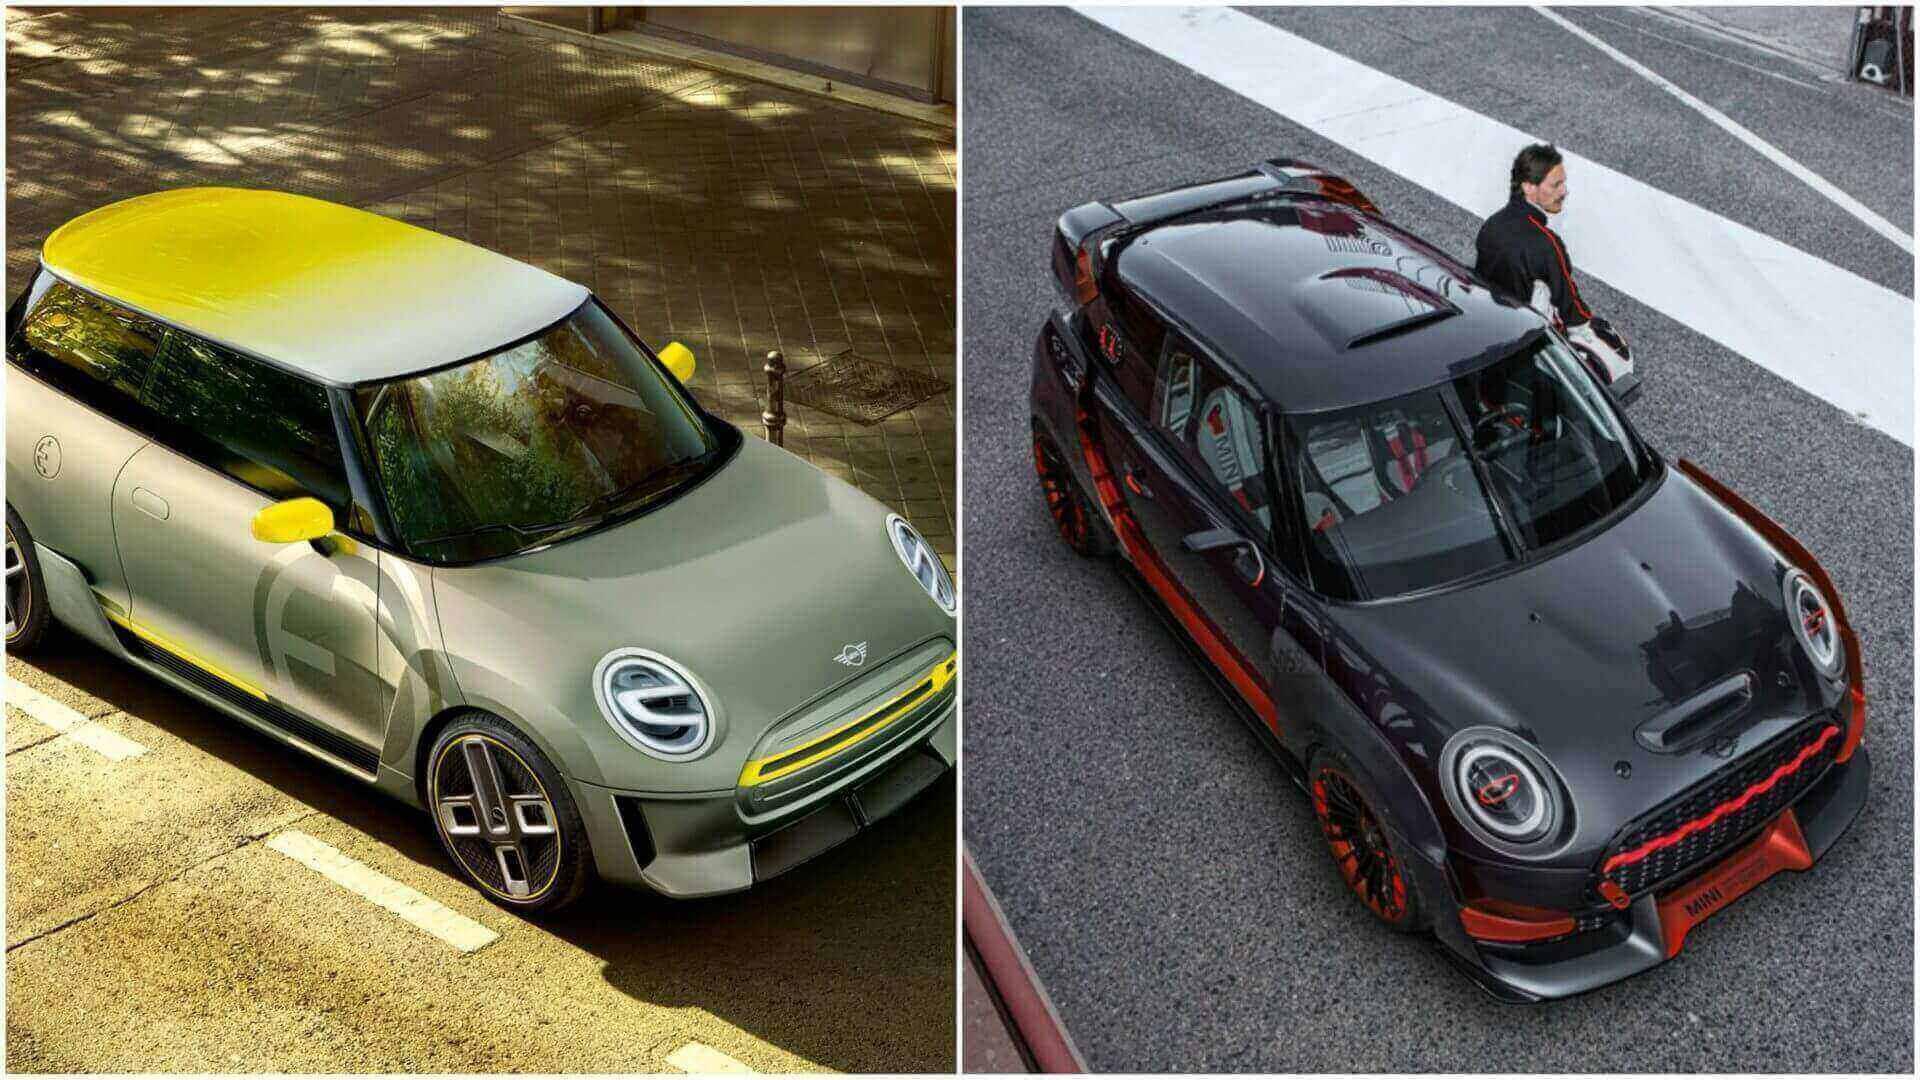 Bmw To Show Mini Concept Models With 3d Printed Parts All3dp